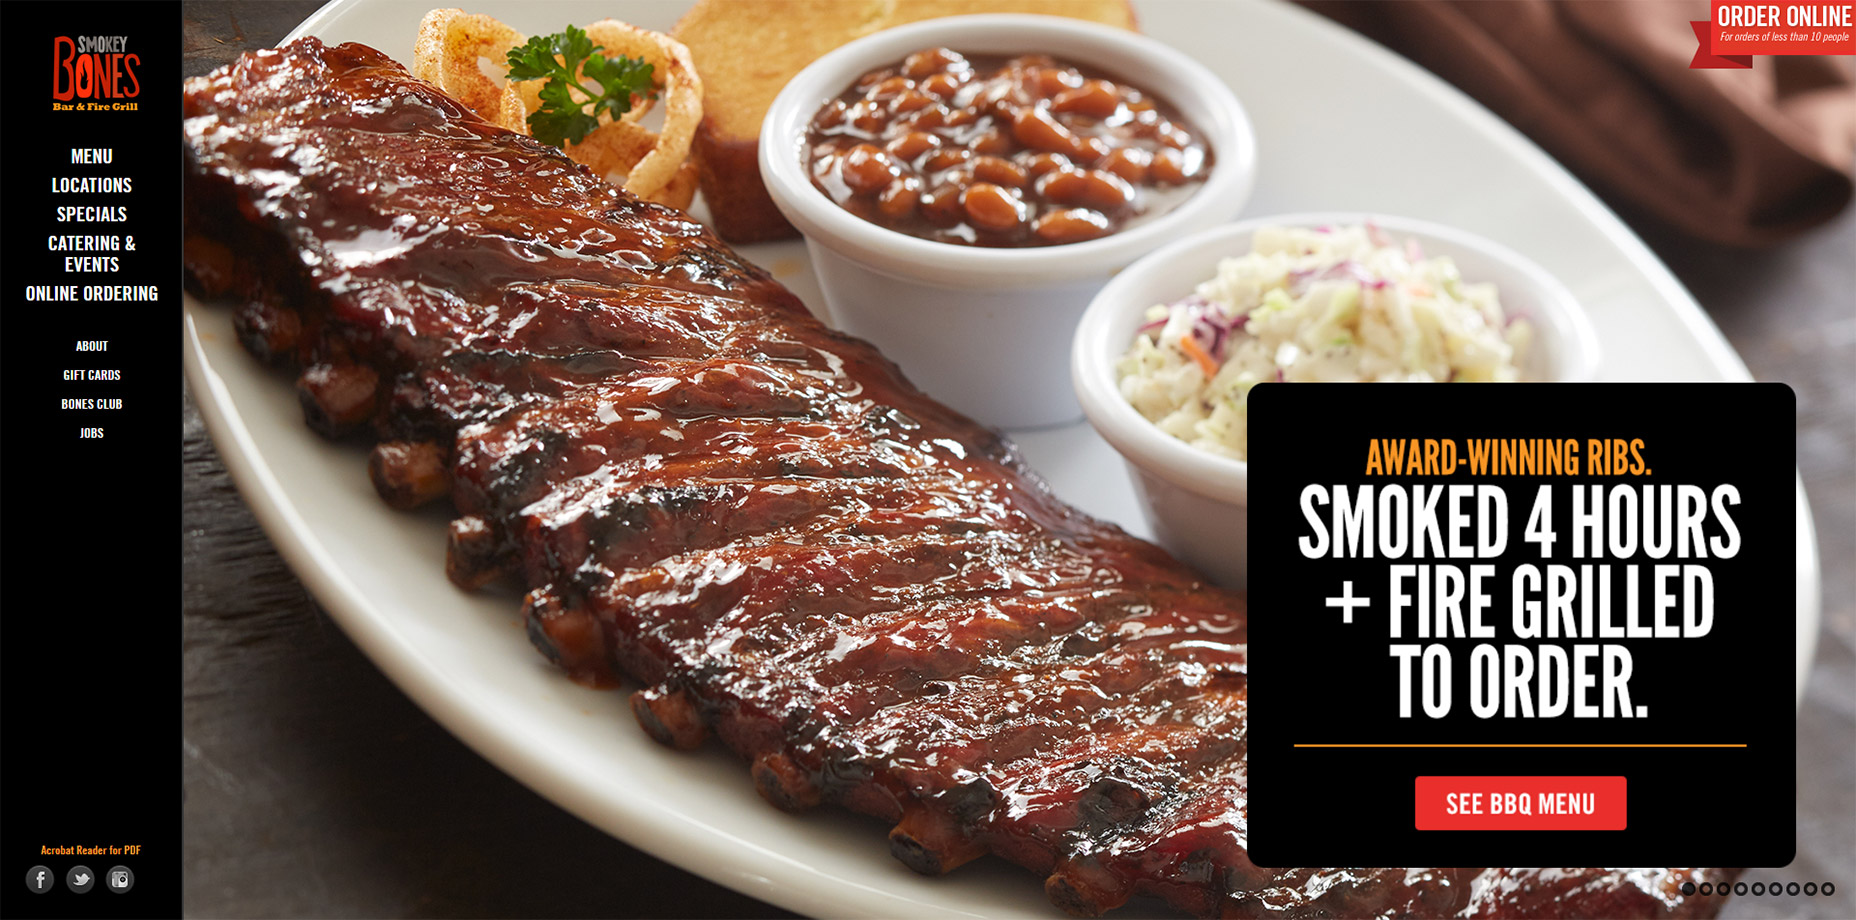 03-smokey-bones-restaurant-site